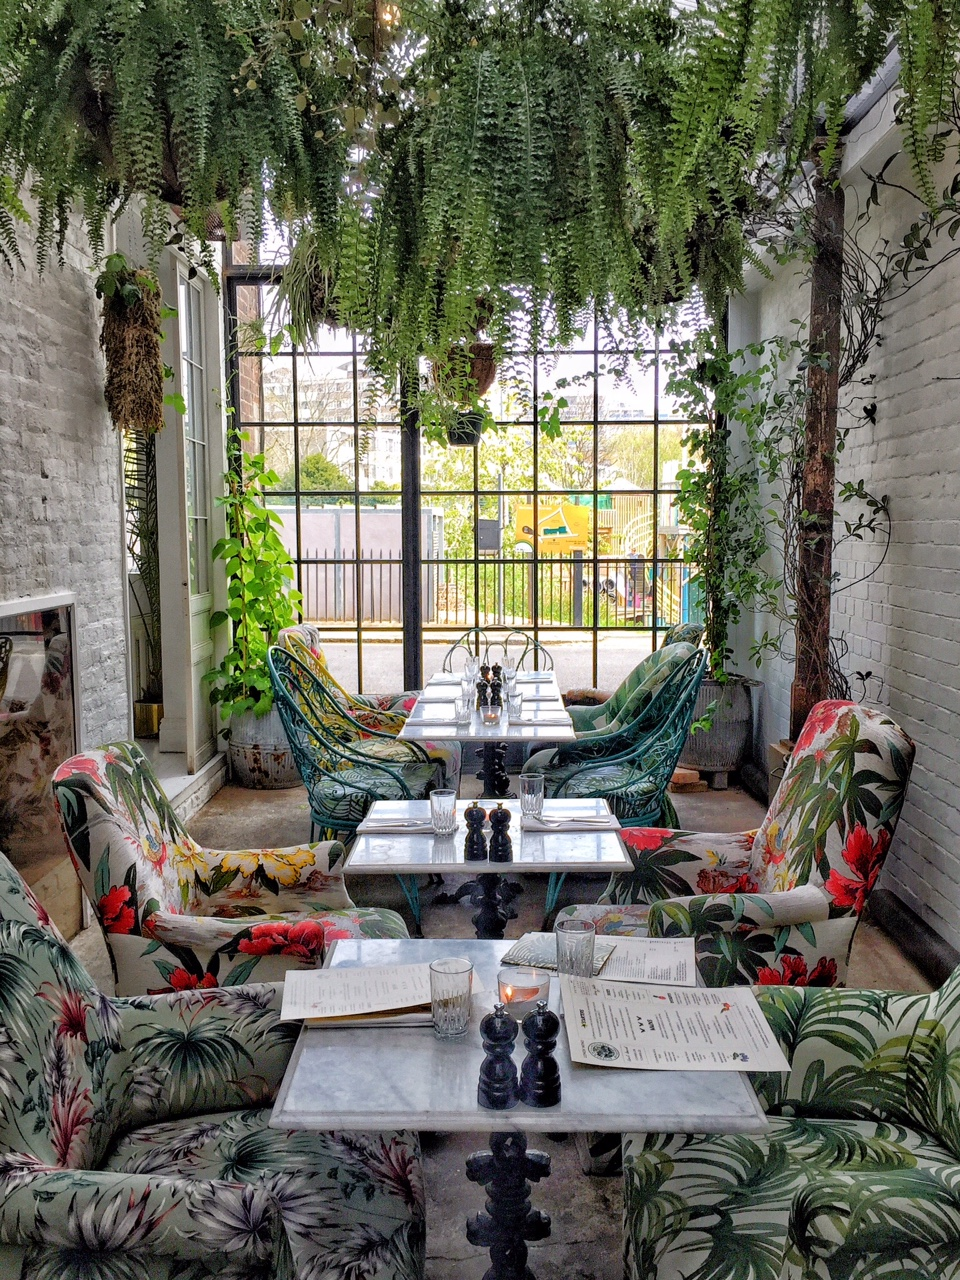 Greenhouse lunching offbeat hunting in east london for Garden design east london